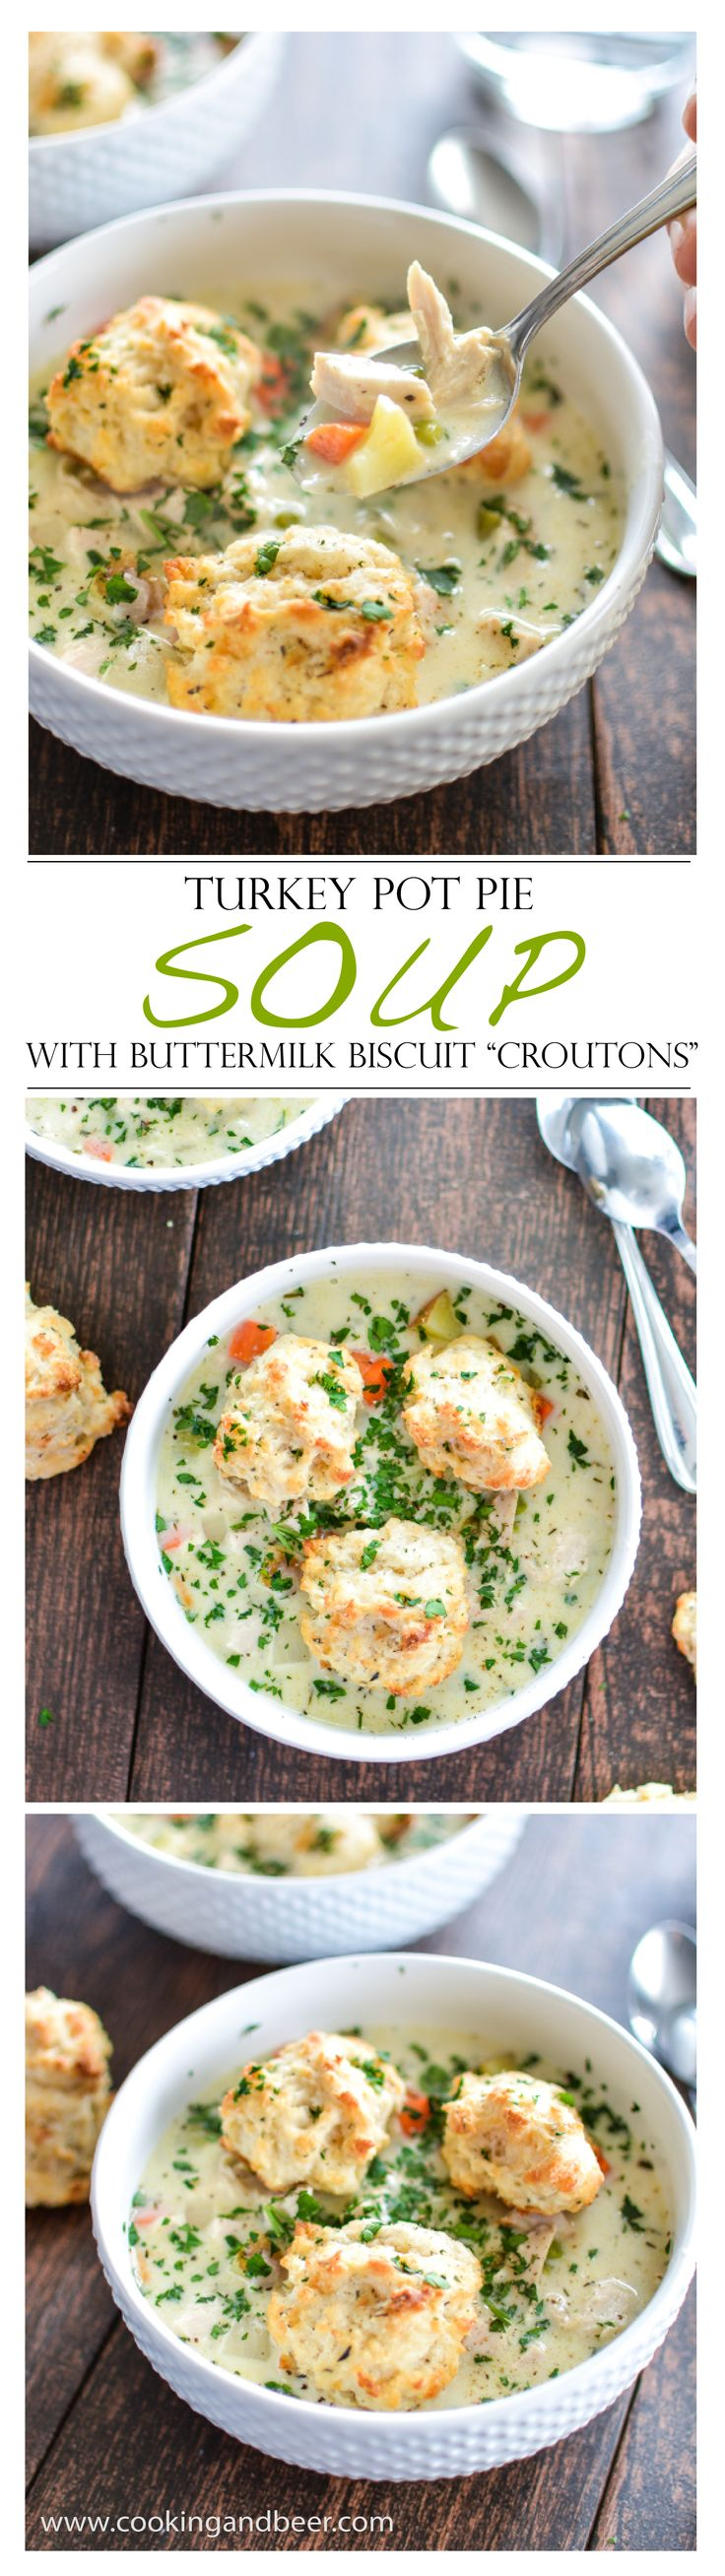 """Turkey Pot Pie Soup with Buttermilk Biscuit """"Croutons"""" is the perfect use for those Thanksgiving leftovers! 